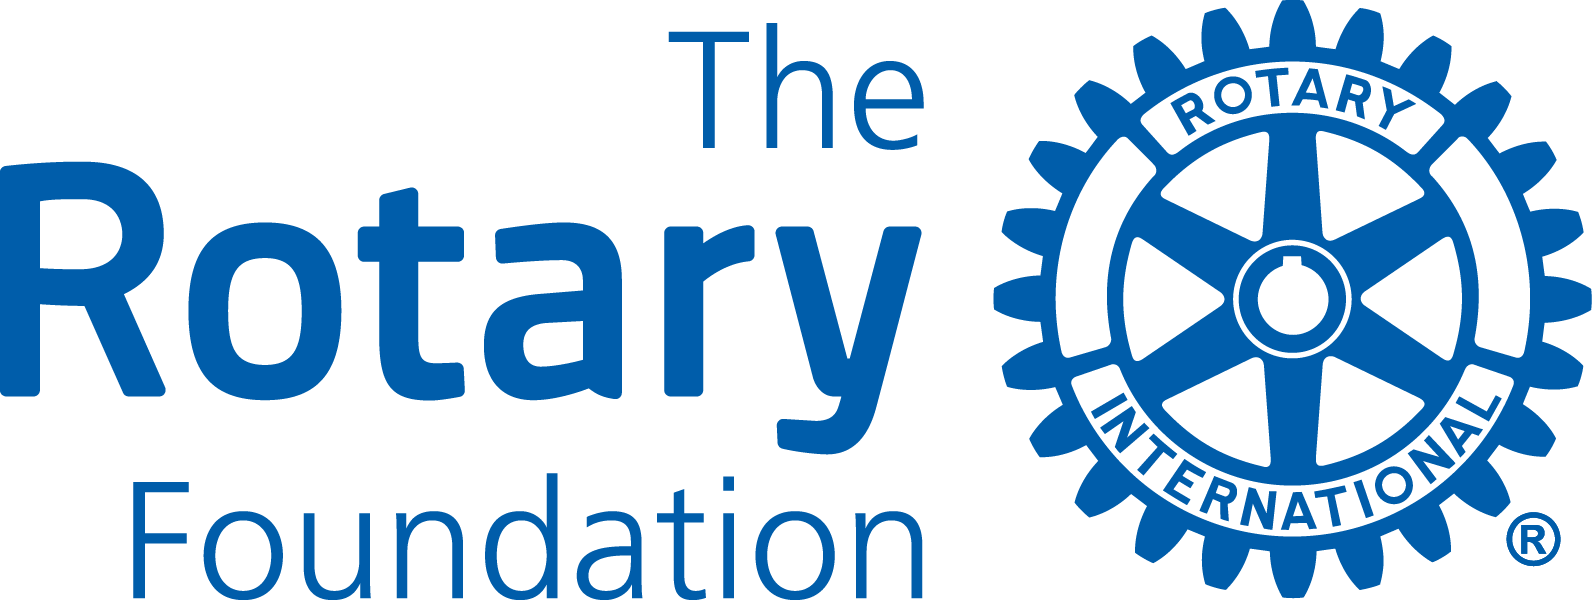 Rotary Foundation.png